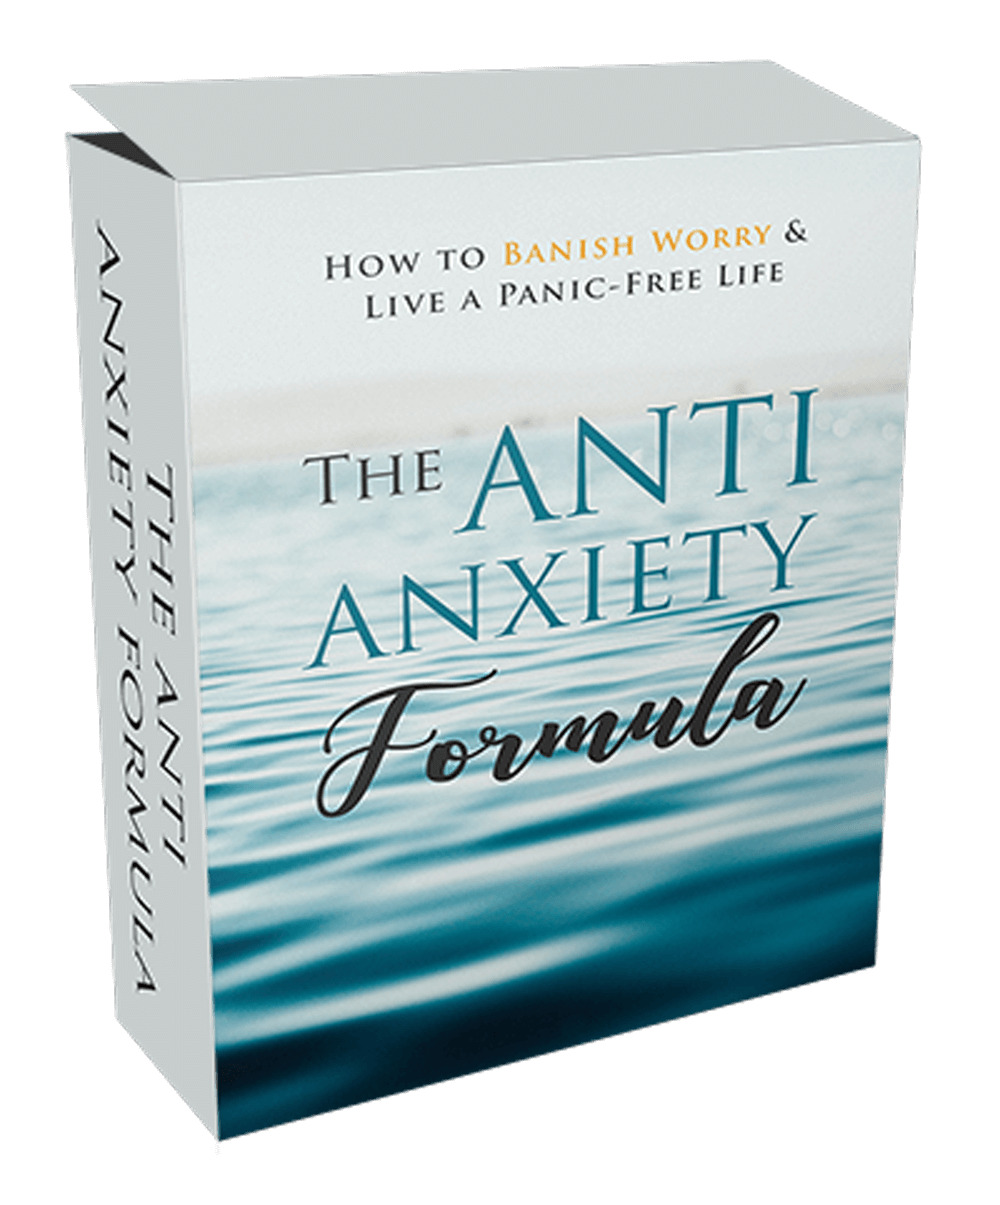 The Anti-Anxiety Formula